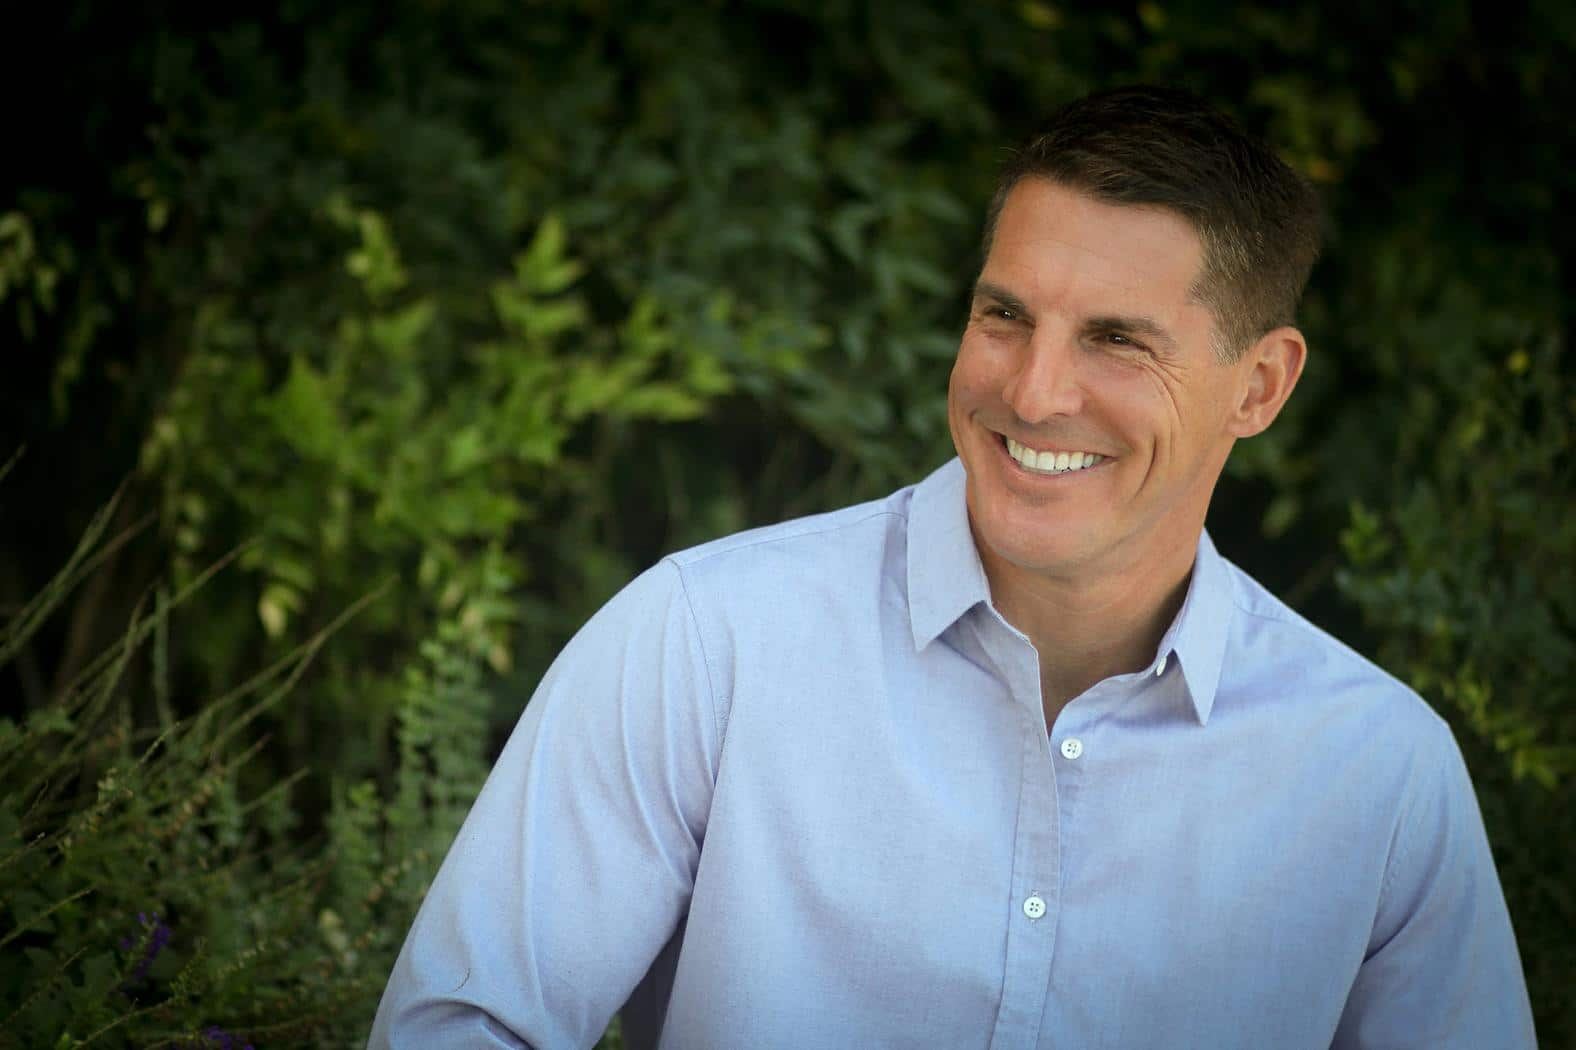 CNLP 228: Craig Groeschel on Handling the Pain That Comes With Life and Leadership, How God Can Redeem Self-inflicted Pain and Bring Hope in the Dark of Personal Suffering